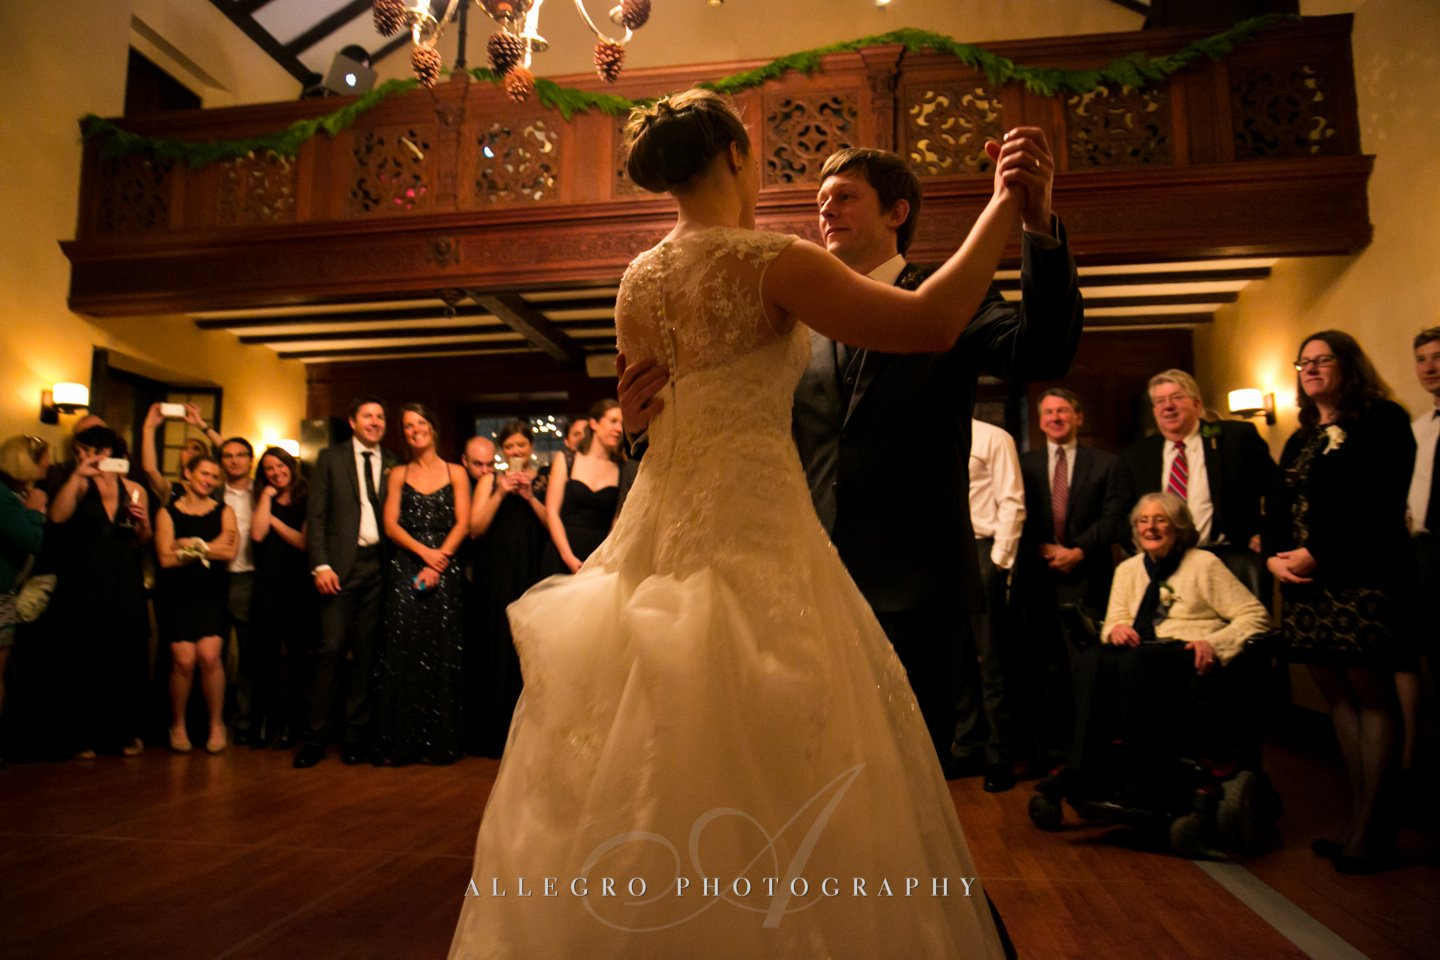 first dance - photo by allegro photography